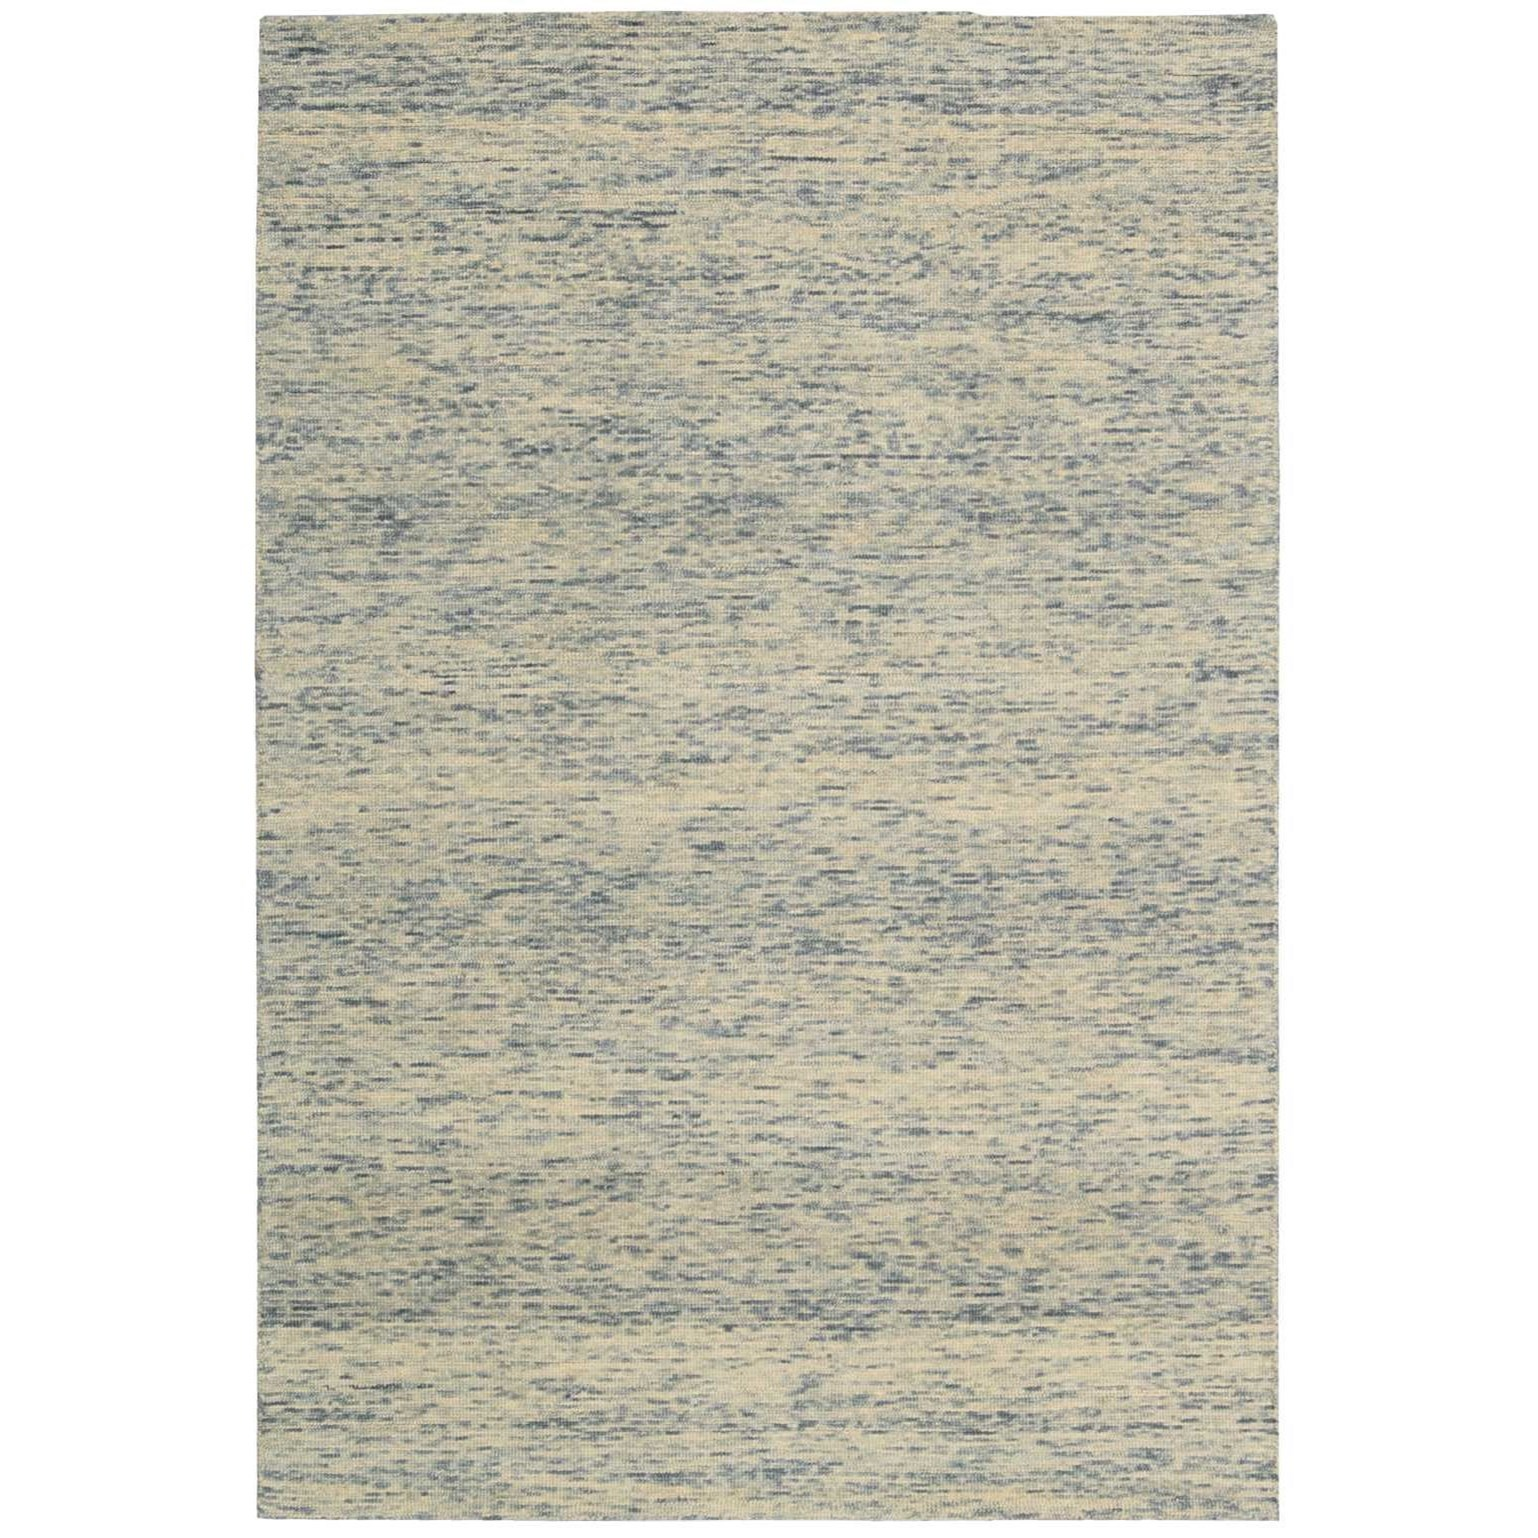 Sterling 4' x 6' Ocean Rectangle Rug by Nourison at Home Collections Furniture